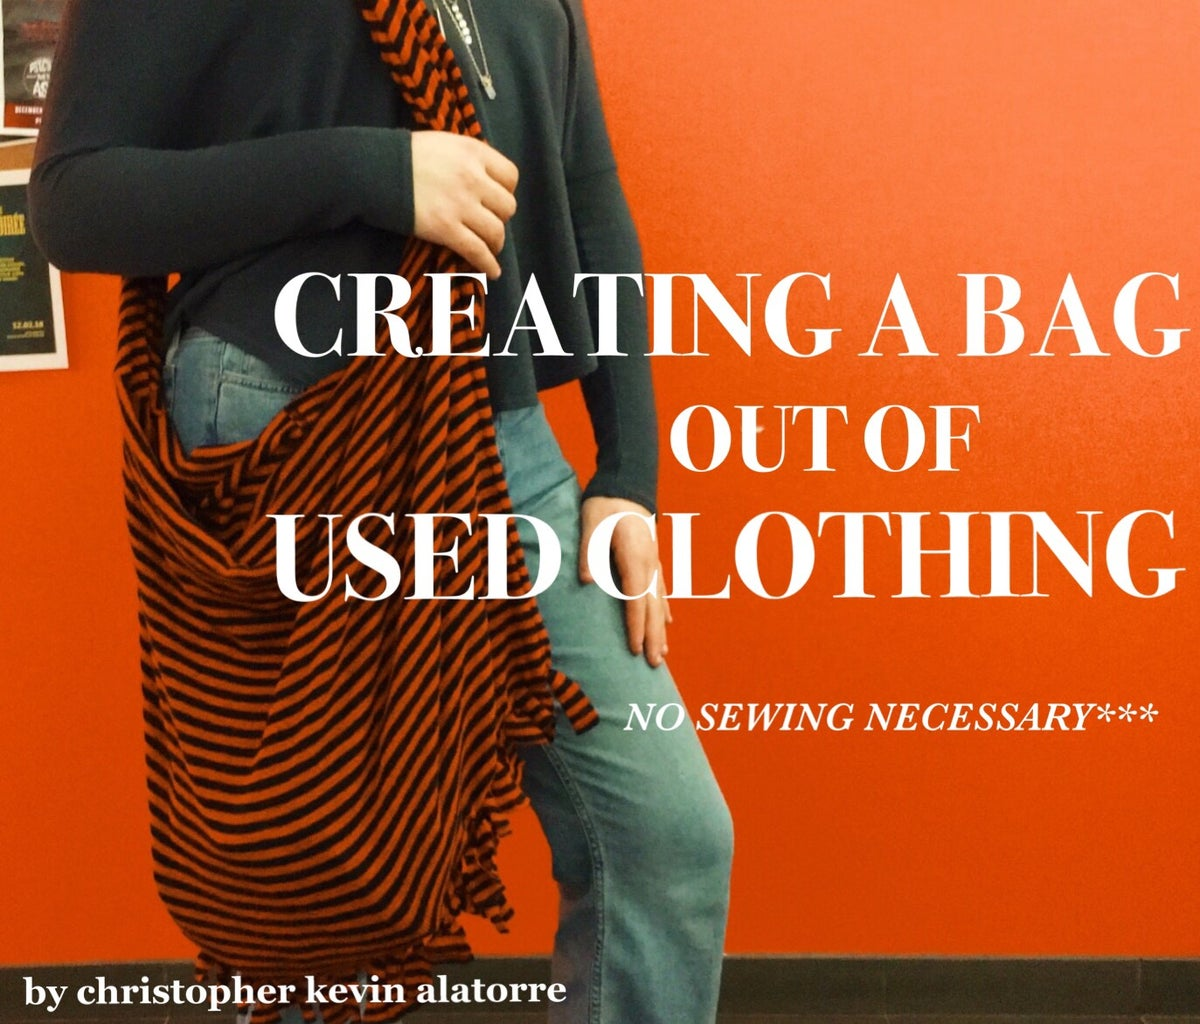 A Bag Out of Used Clothing ! - NO SEWING NEEDED